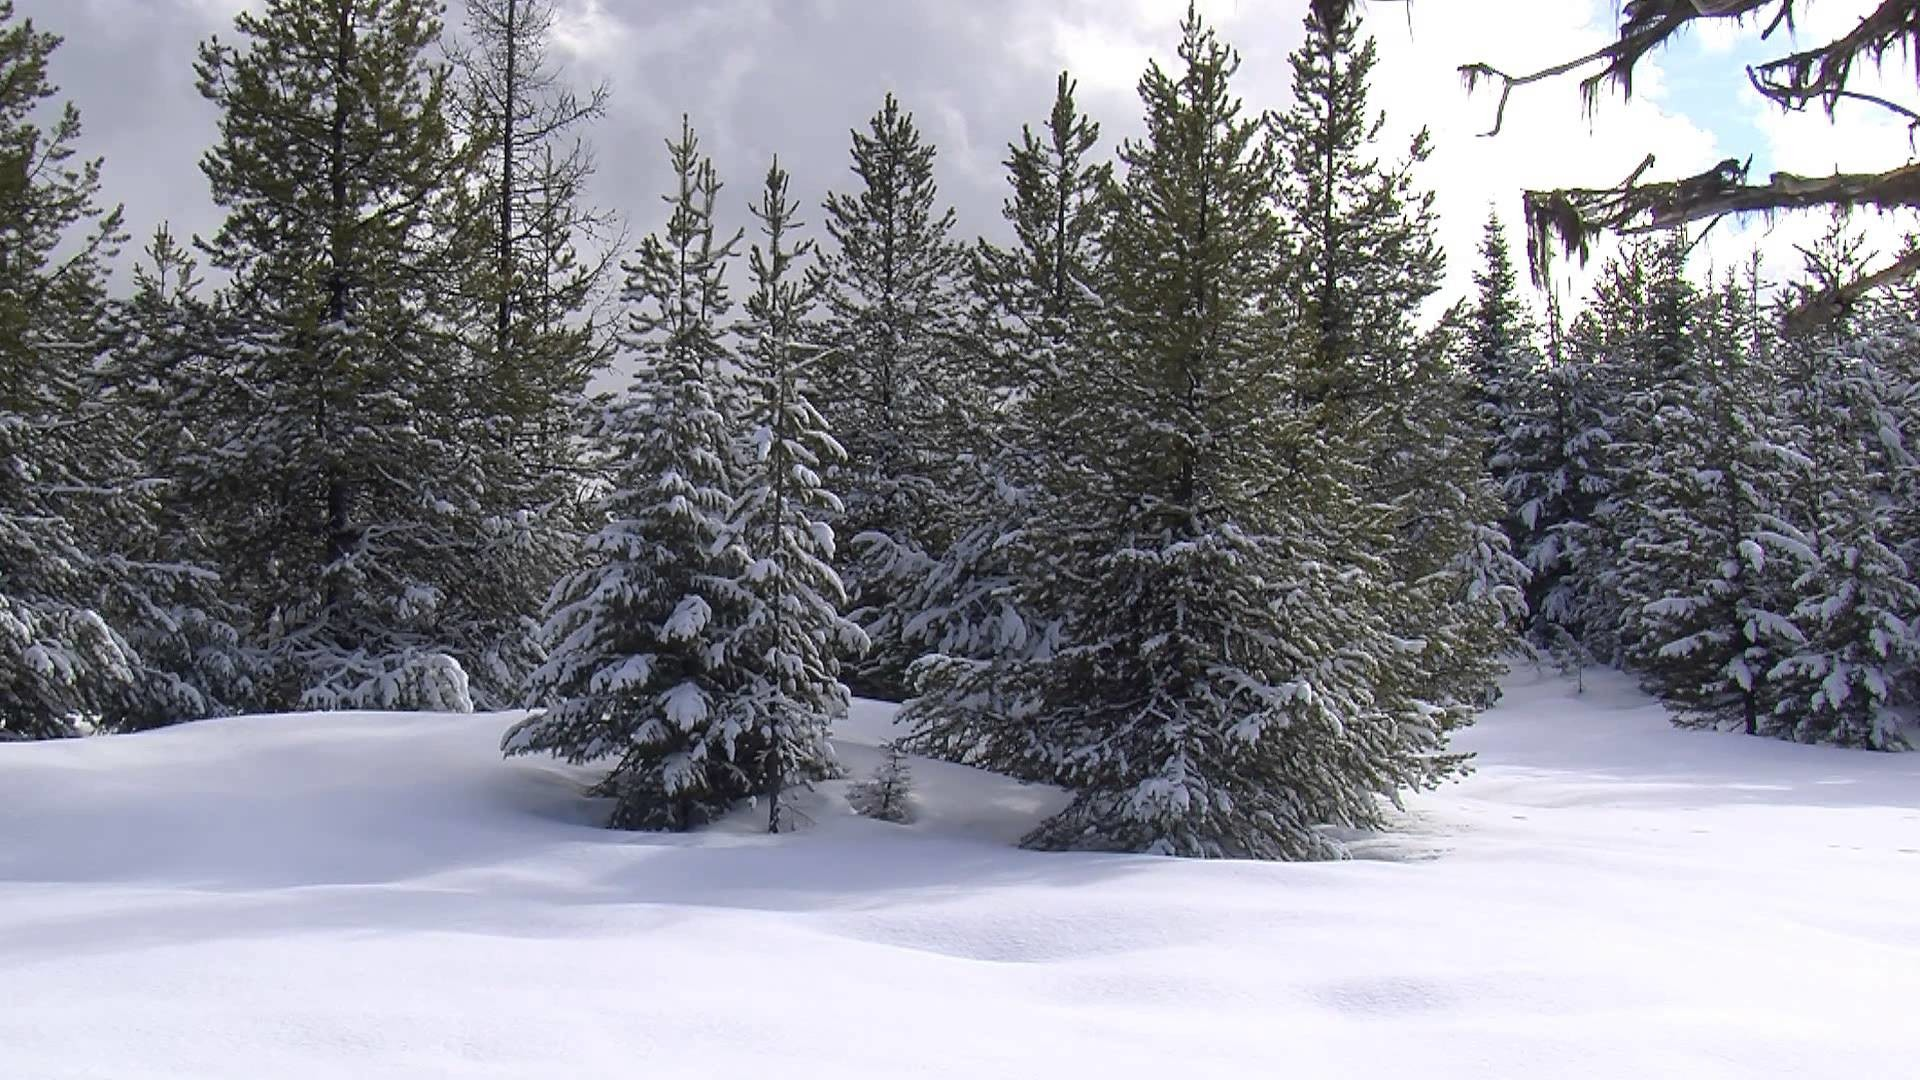 1920x1080 Winter Wonderland for Your Home: Snowy Scenery for Your Television - Trailer